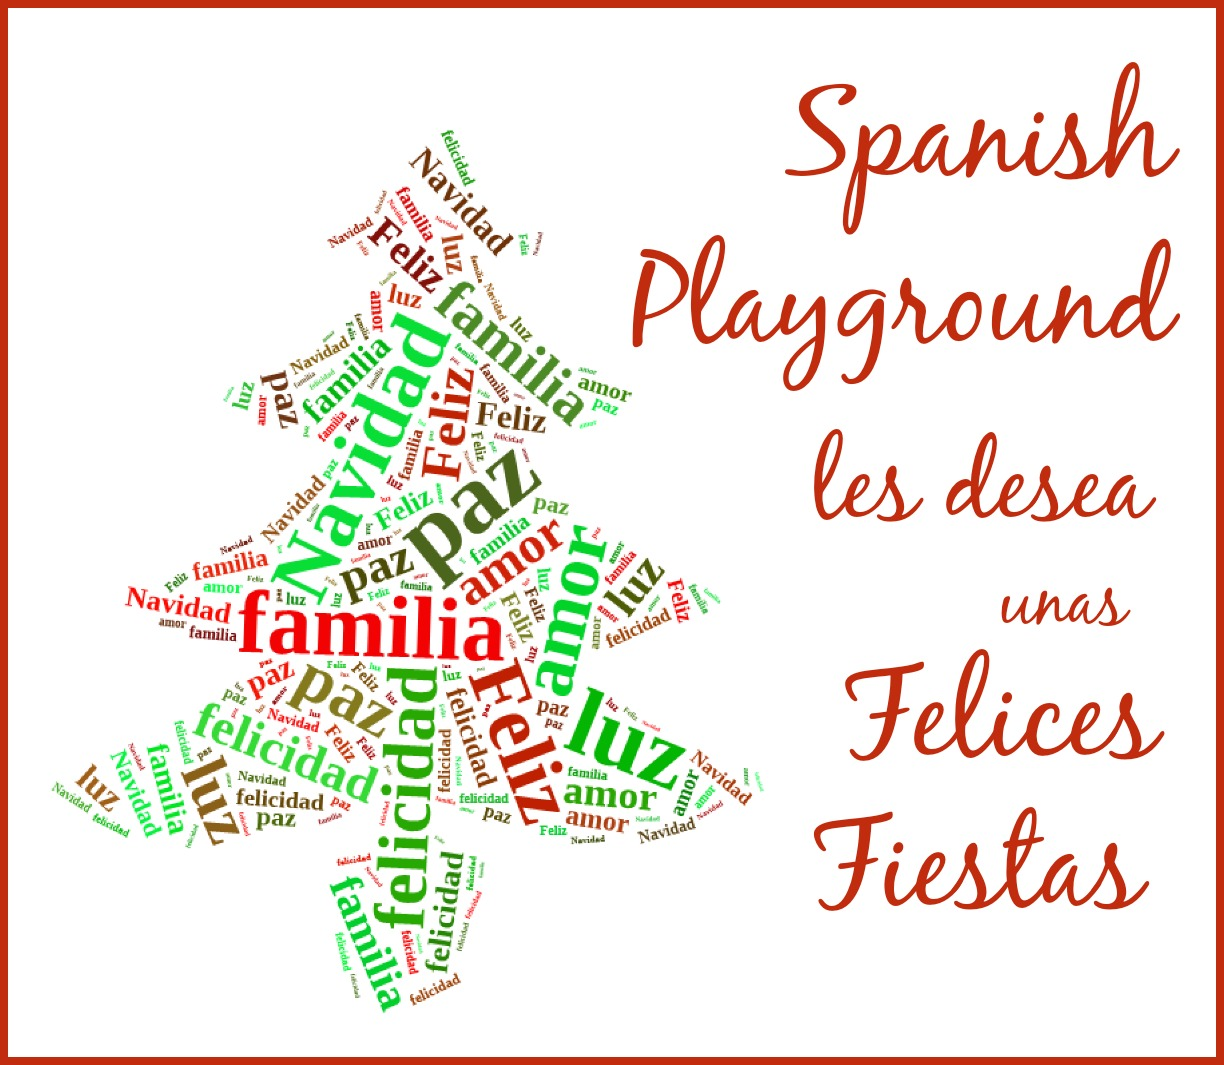 Wishing You Happy Holidays in Spanish - Spanish Playground